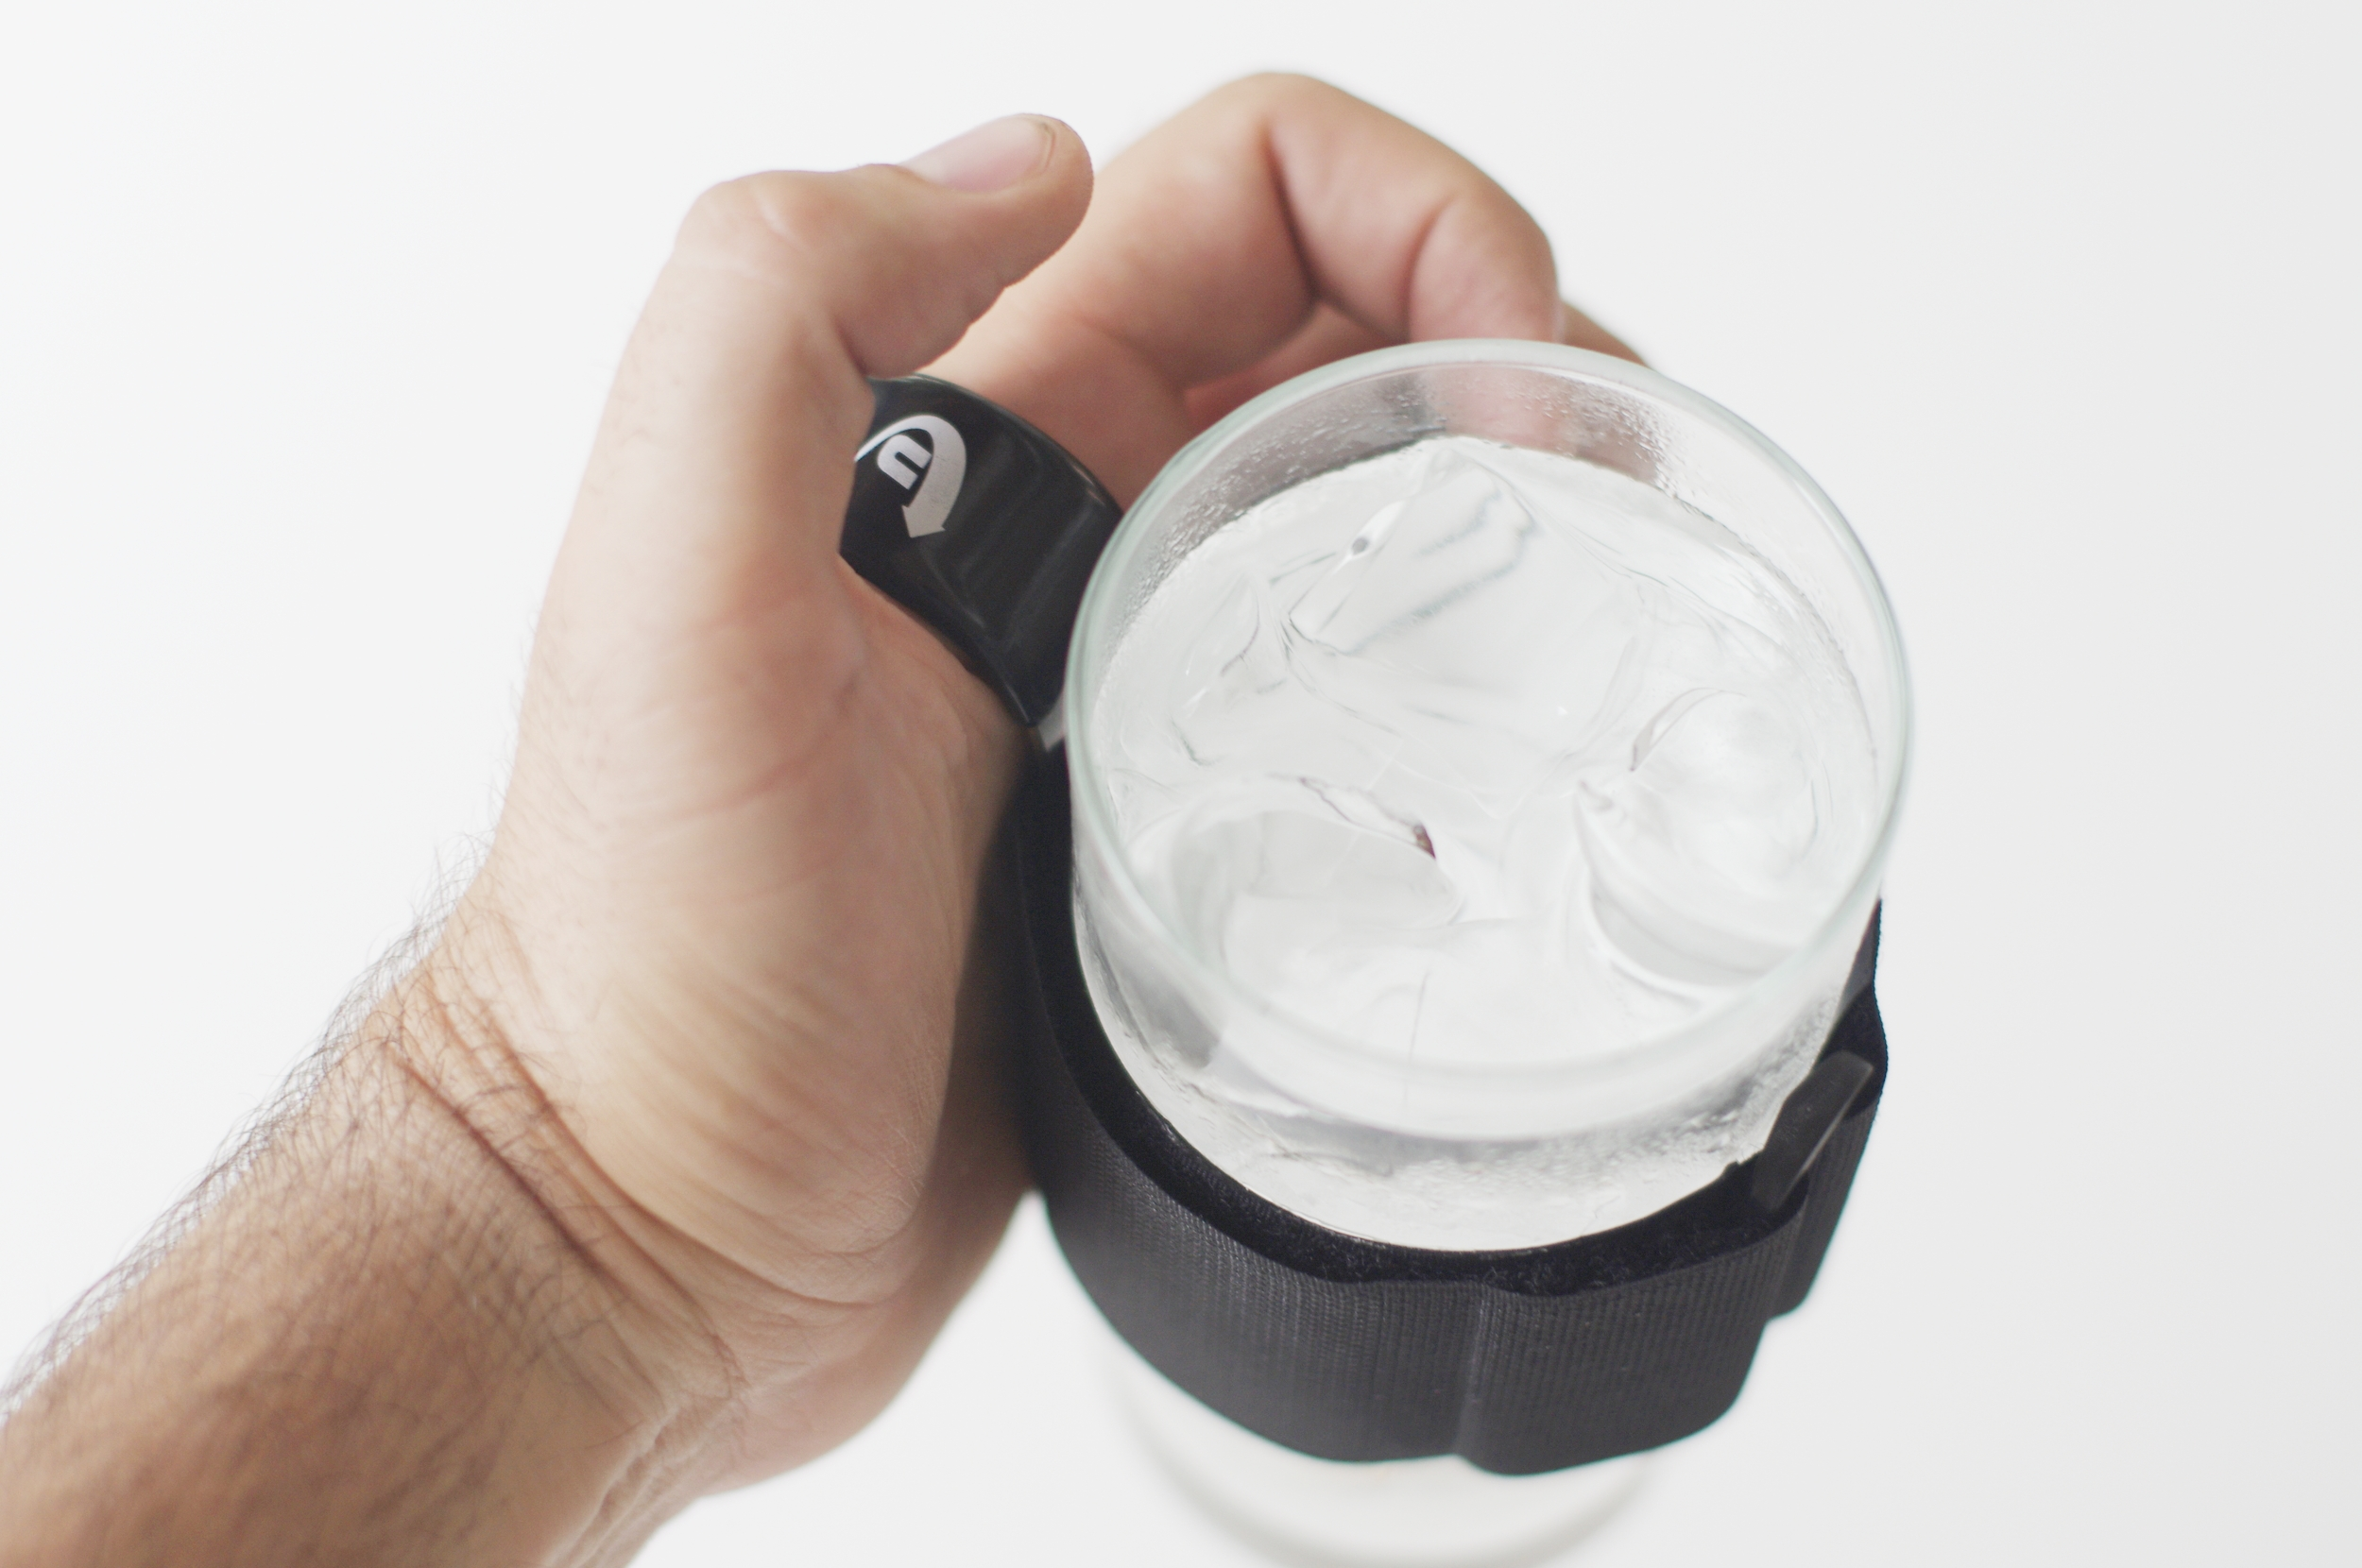 uDrink clear glass hand.JPG